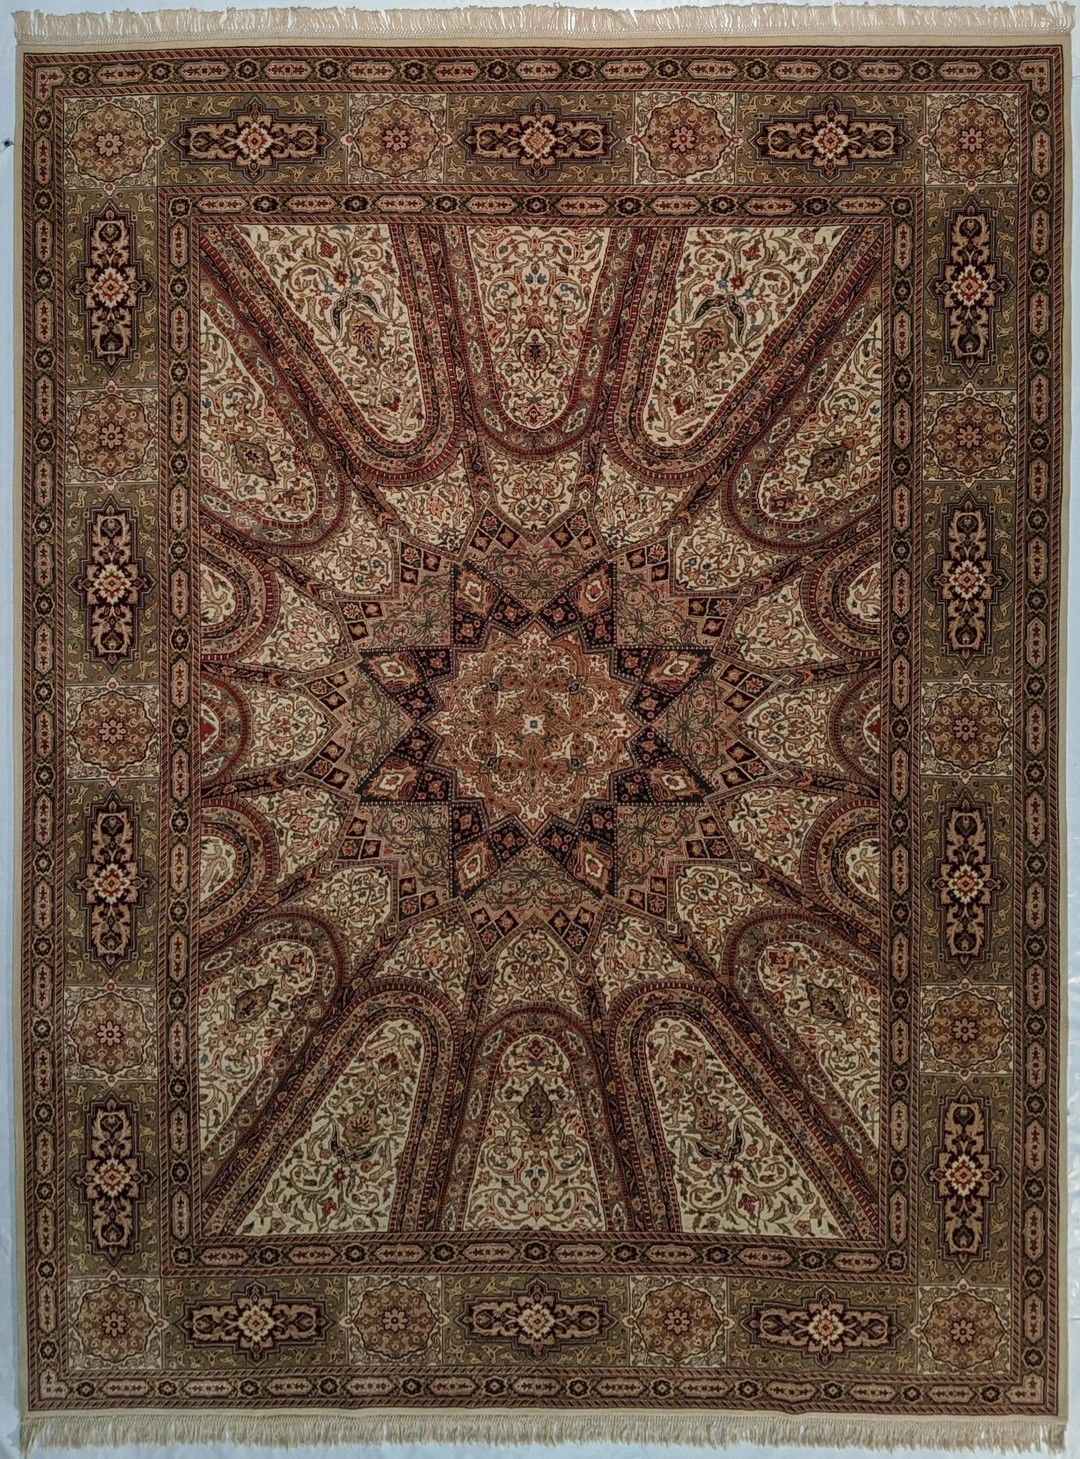 Pin By Bestrugplace Handmade Rugs At On 9x12 Handmade Rugs Clearance Sale On 9 X 12 Carpet 9x11 Rugs 8x12 Rugs In 2020 9x12 Area Rugs Rugs Clearance Rugs